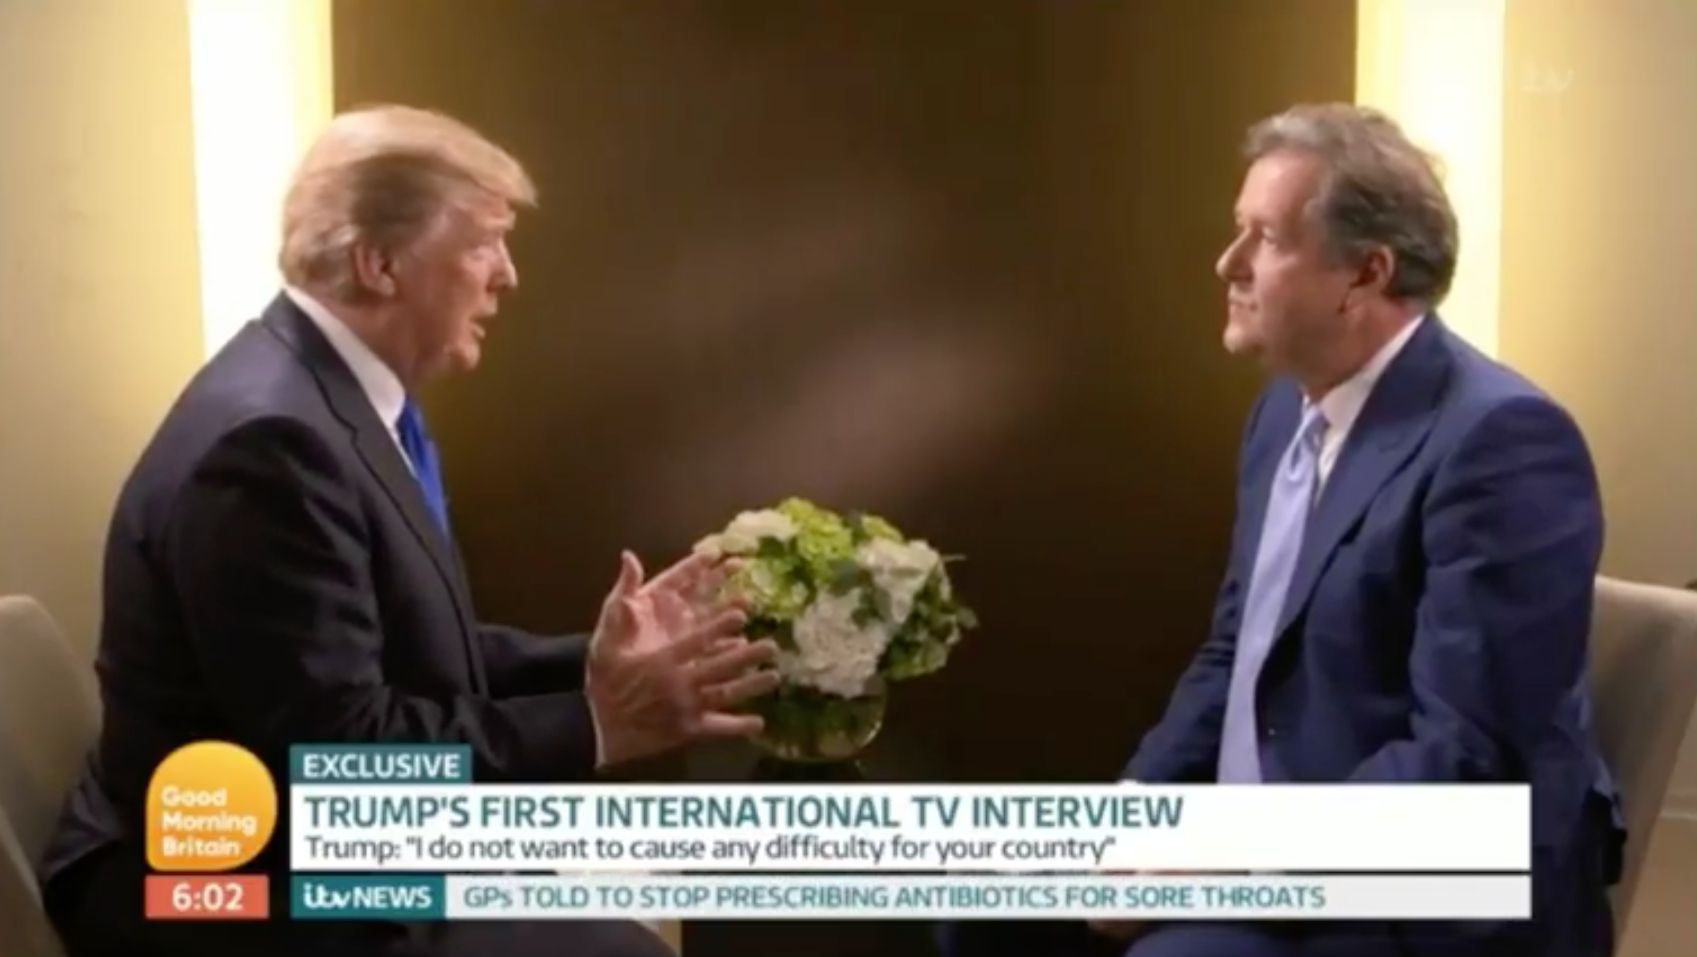 Donald Trump's Britain First Apology To Piers Morgan Is Missing An Actual